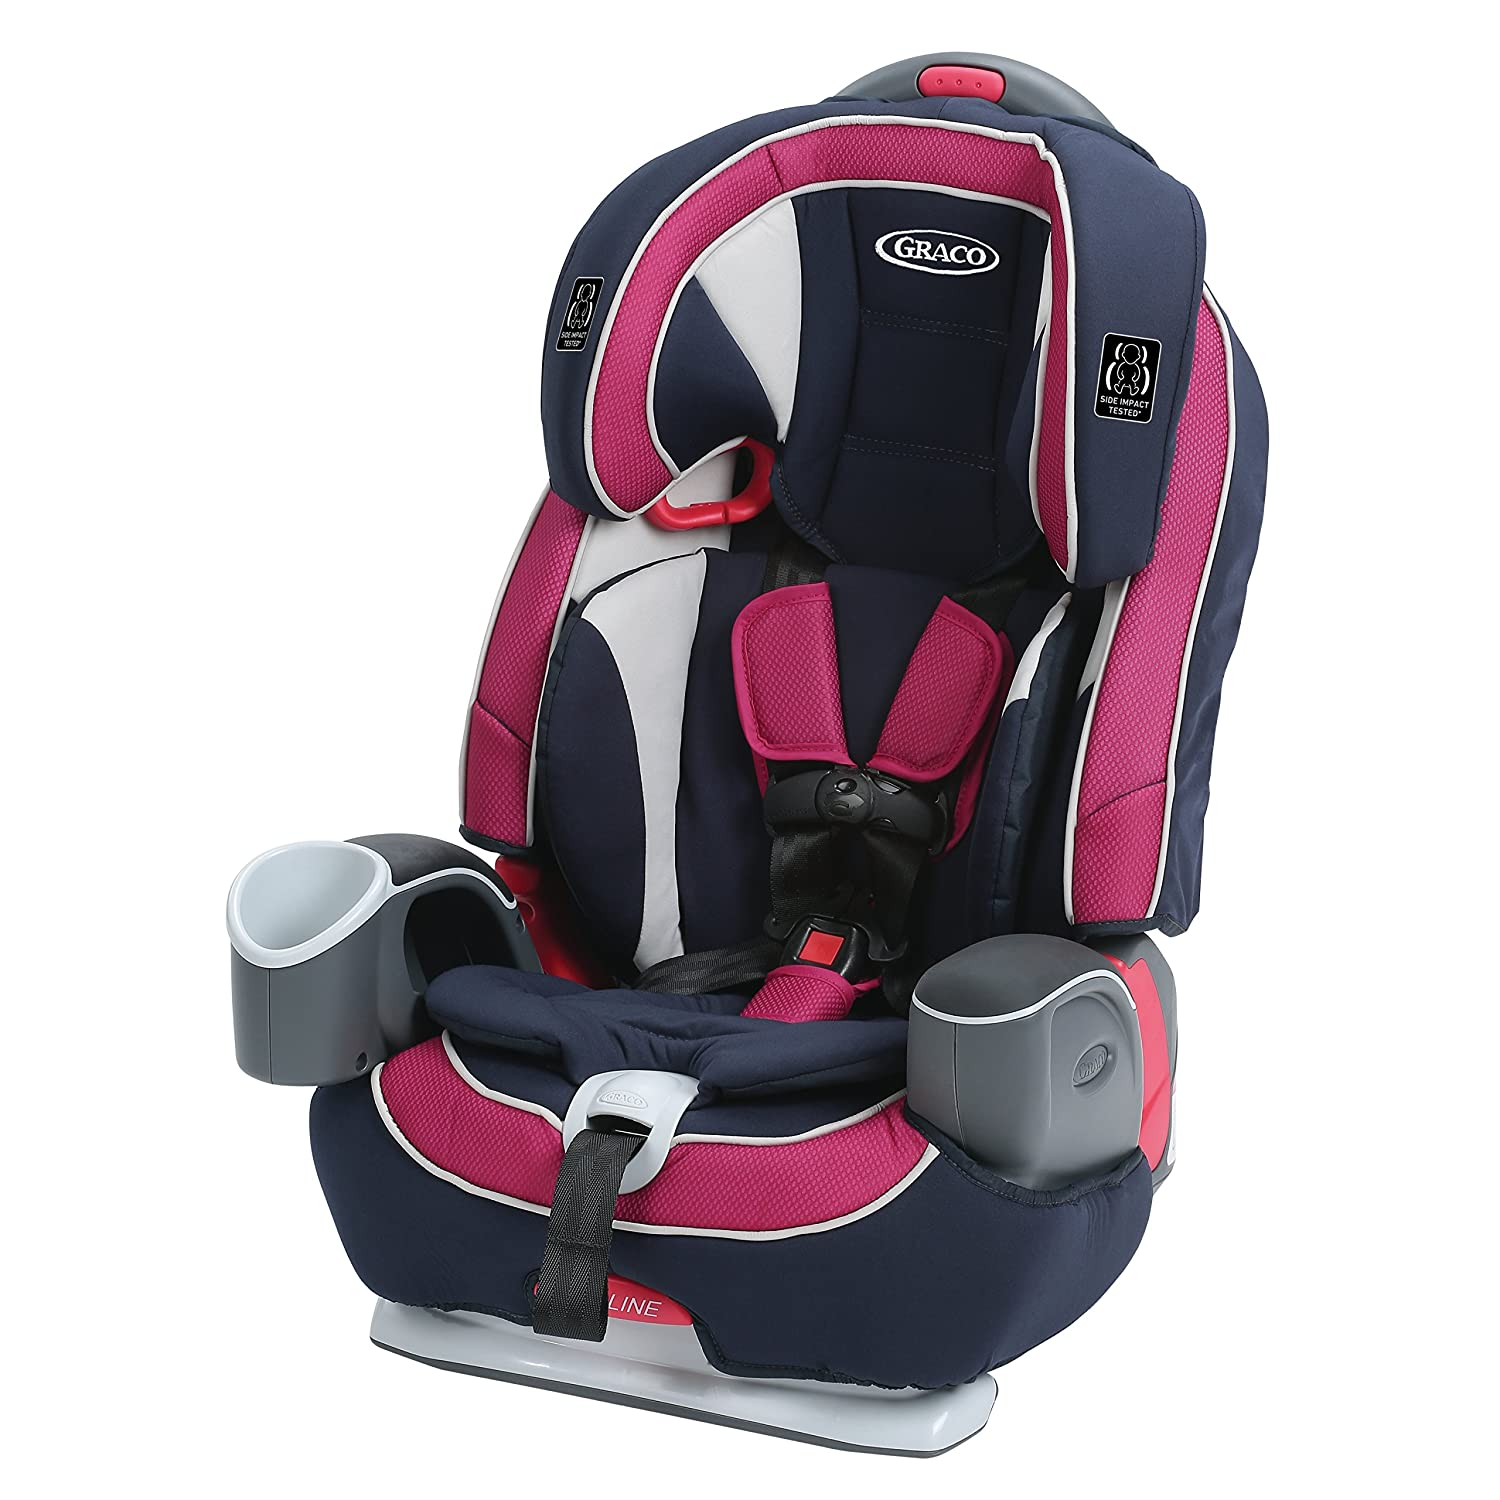 Graco Nautilus 65 LX 3-in-1 Harness Booster Car Seat, Pierce, One Size 1946250